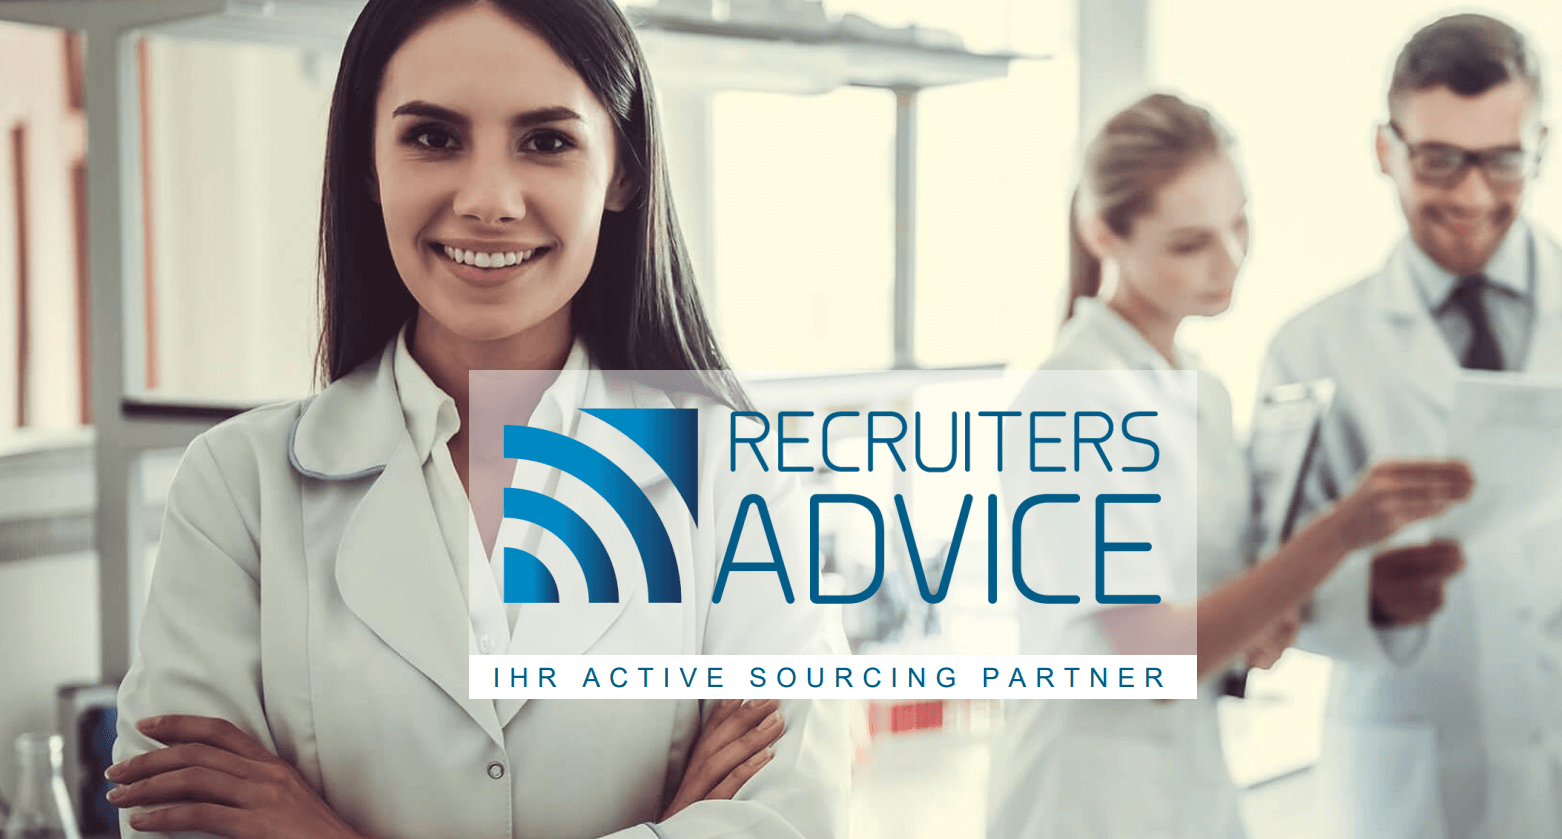 Recruiters Advice - Active Sourcing